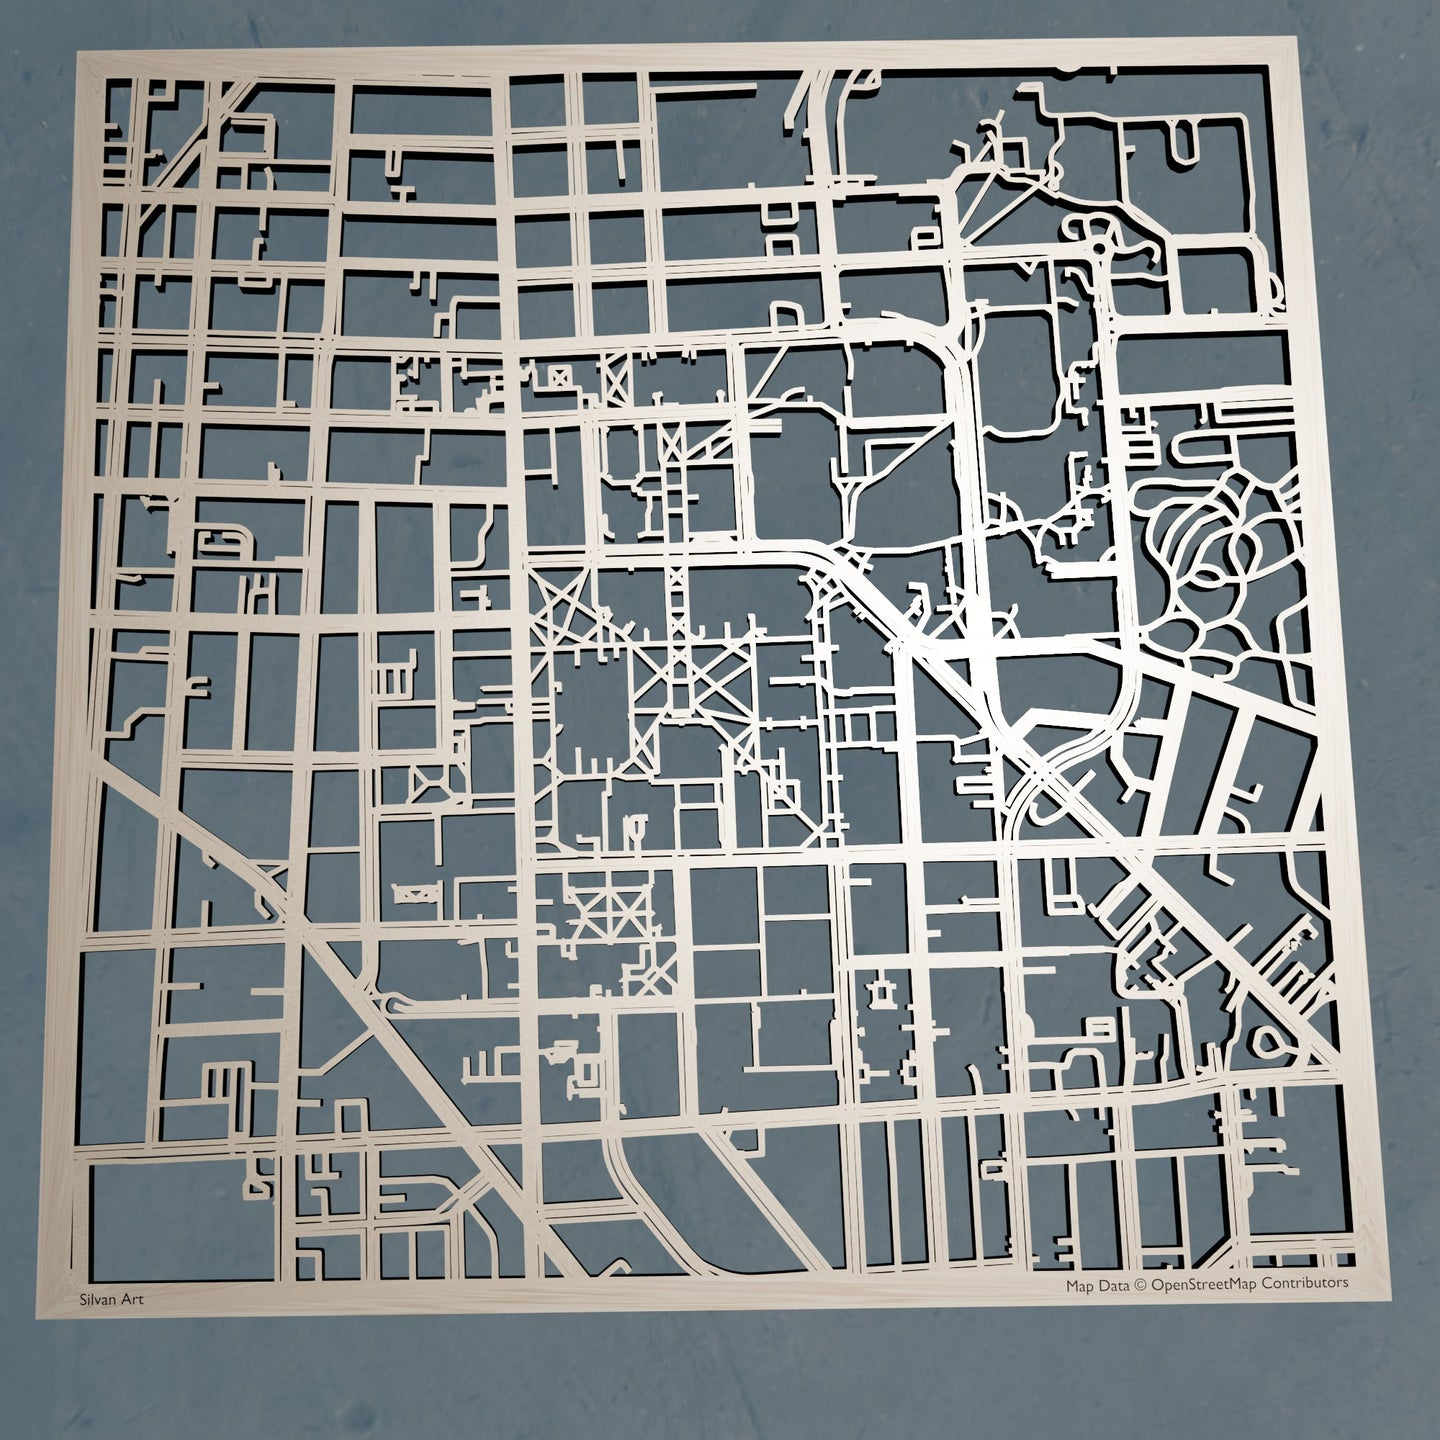 University of Michigan, Ann Arbor 3D Wooden Laser Cut Campus Map | Unique Gift